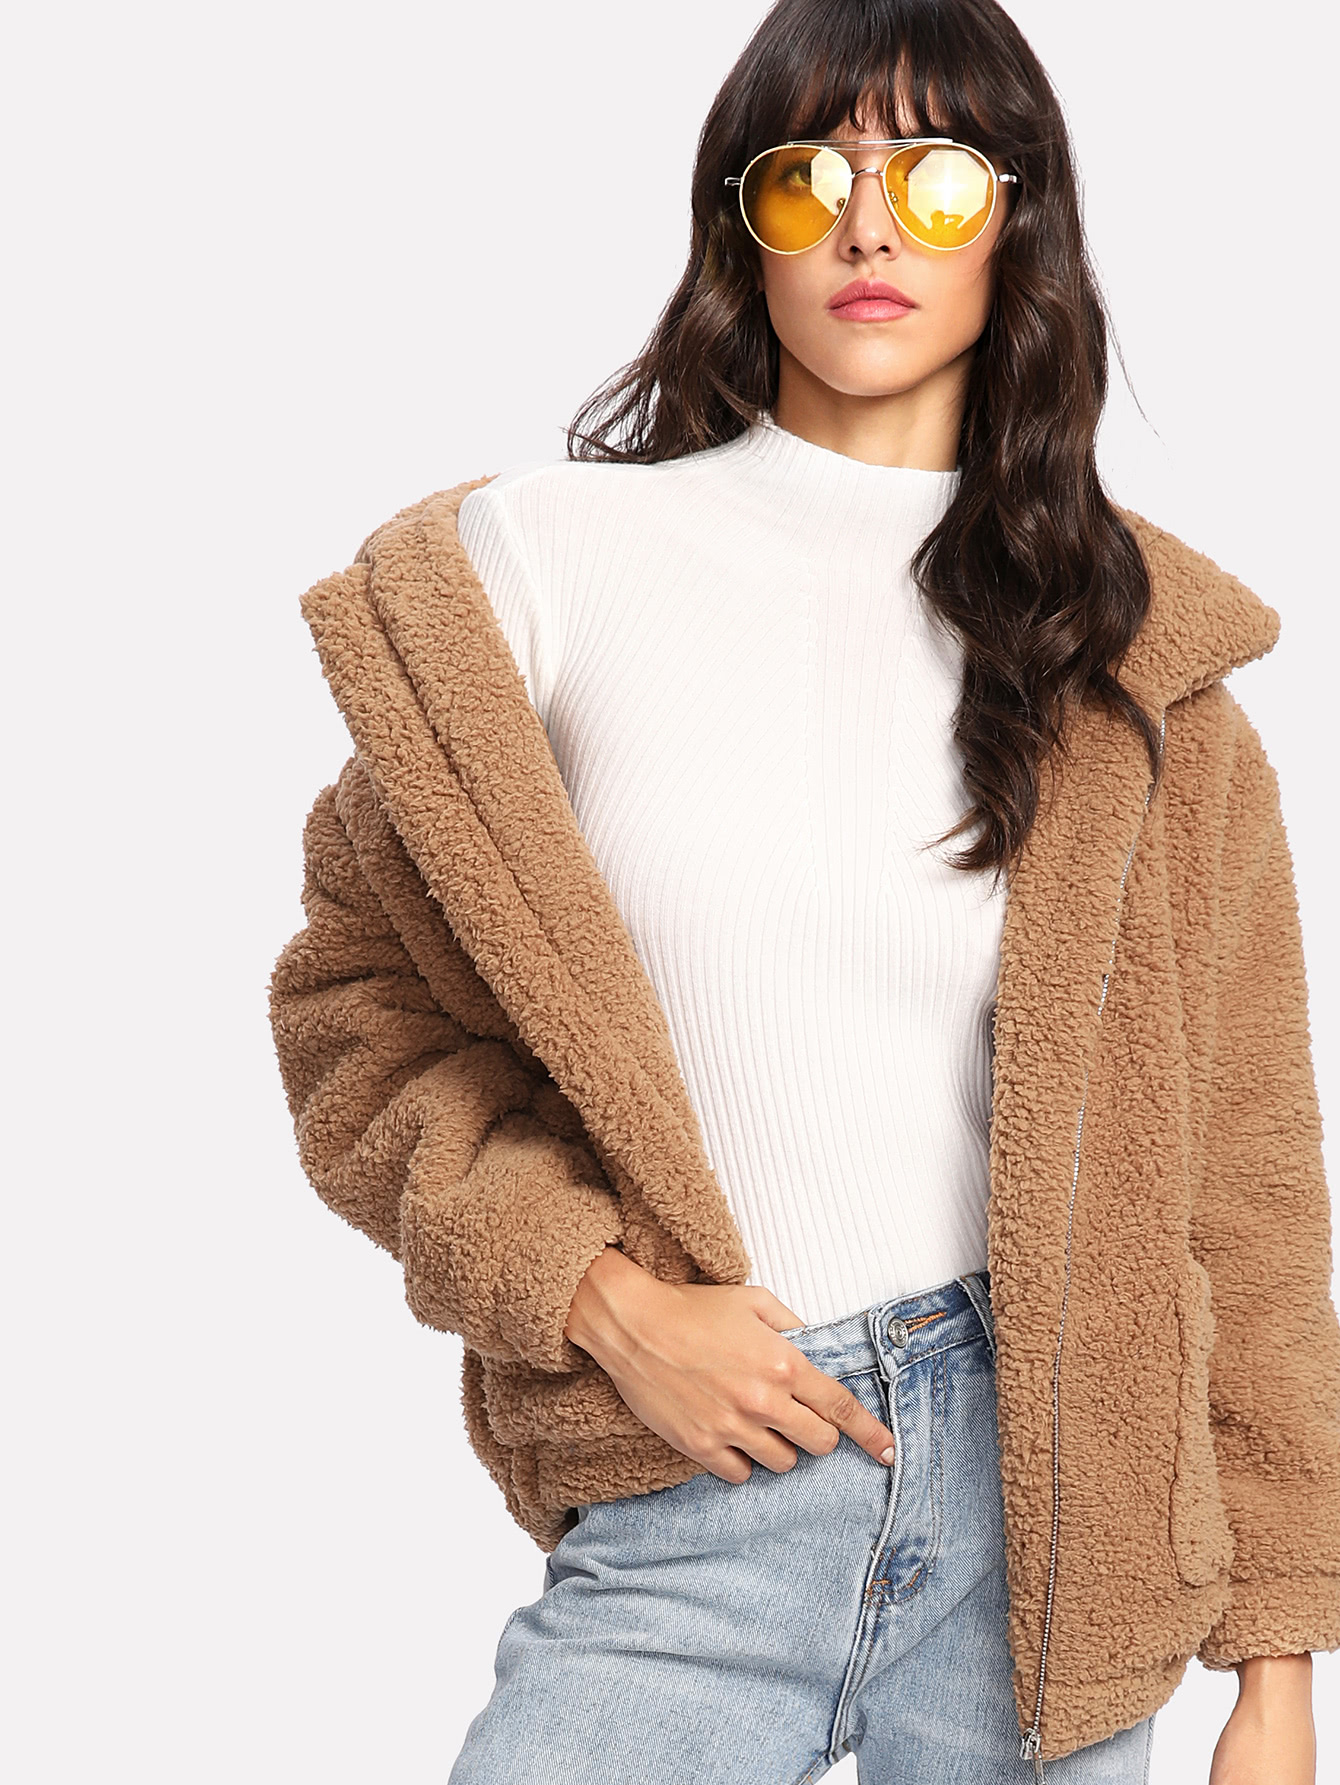 Sheinside Women's Clothing at up to 90% off retail price! Discover over 25, brands of hugely discounted clothes, handbags, shoes and accessories at thredUP.